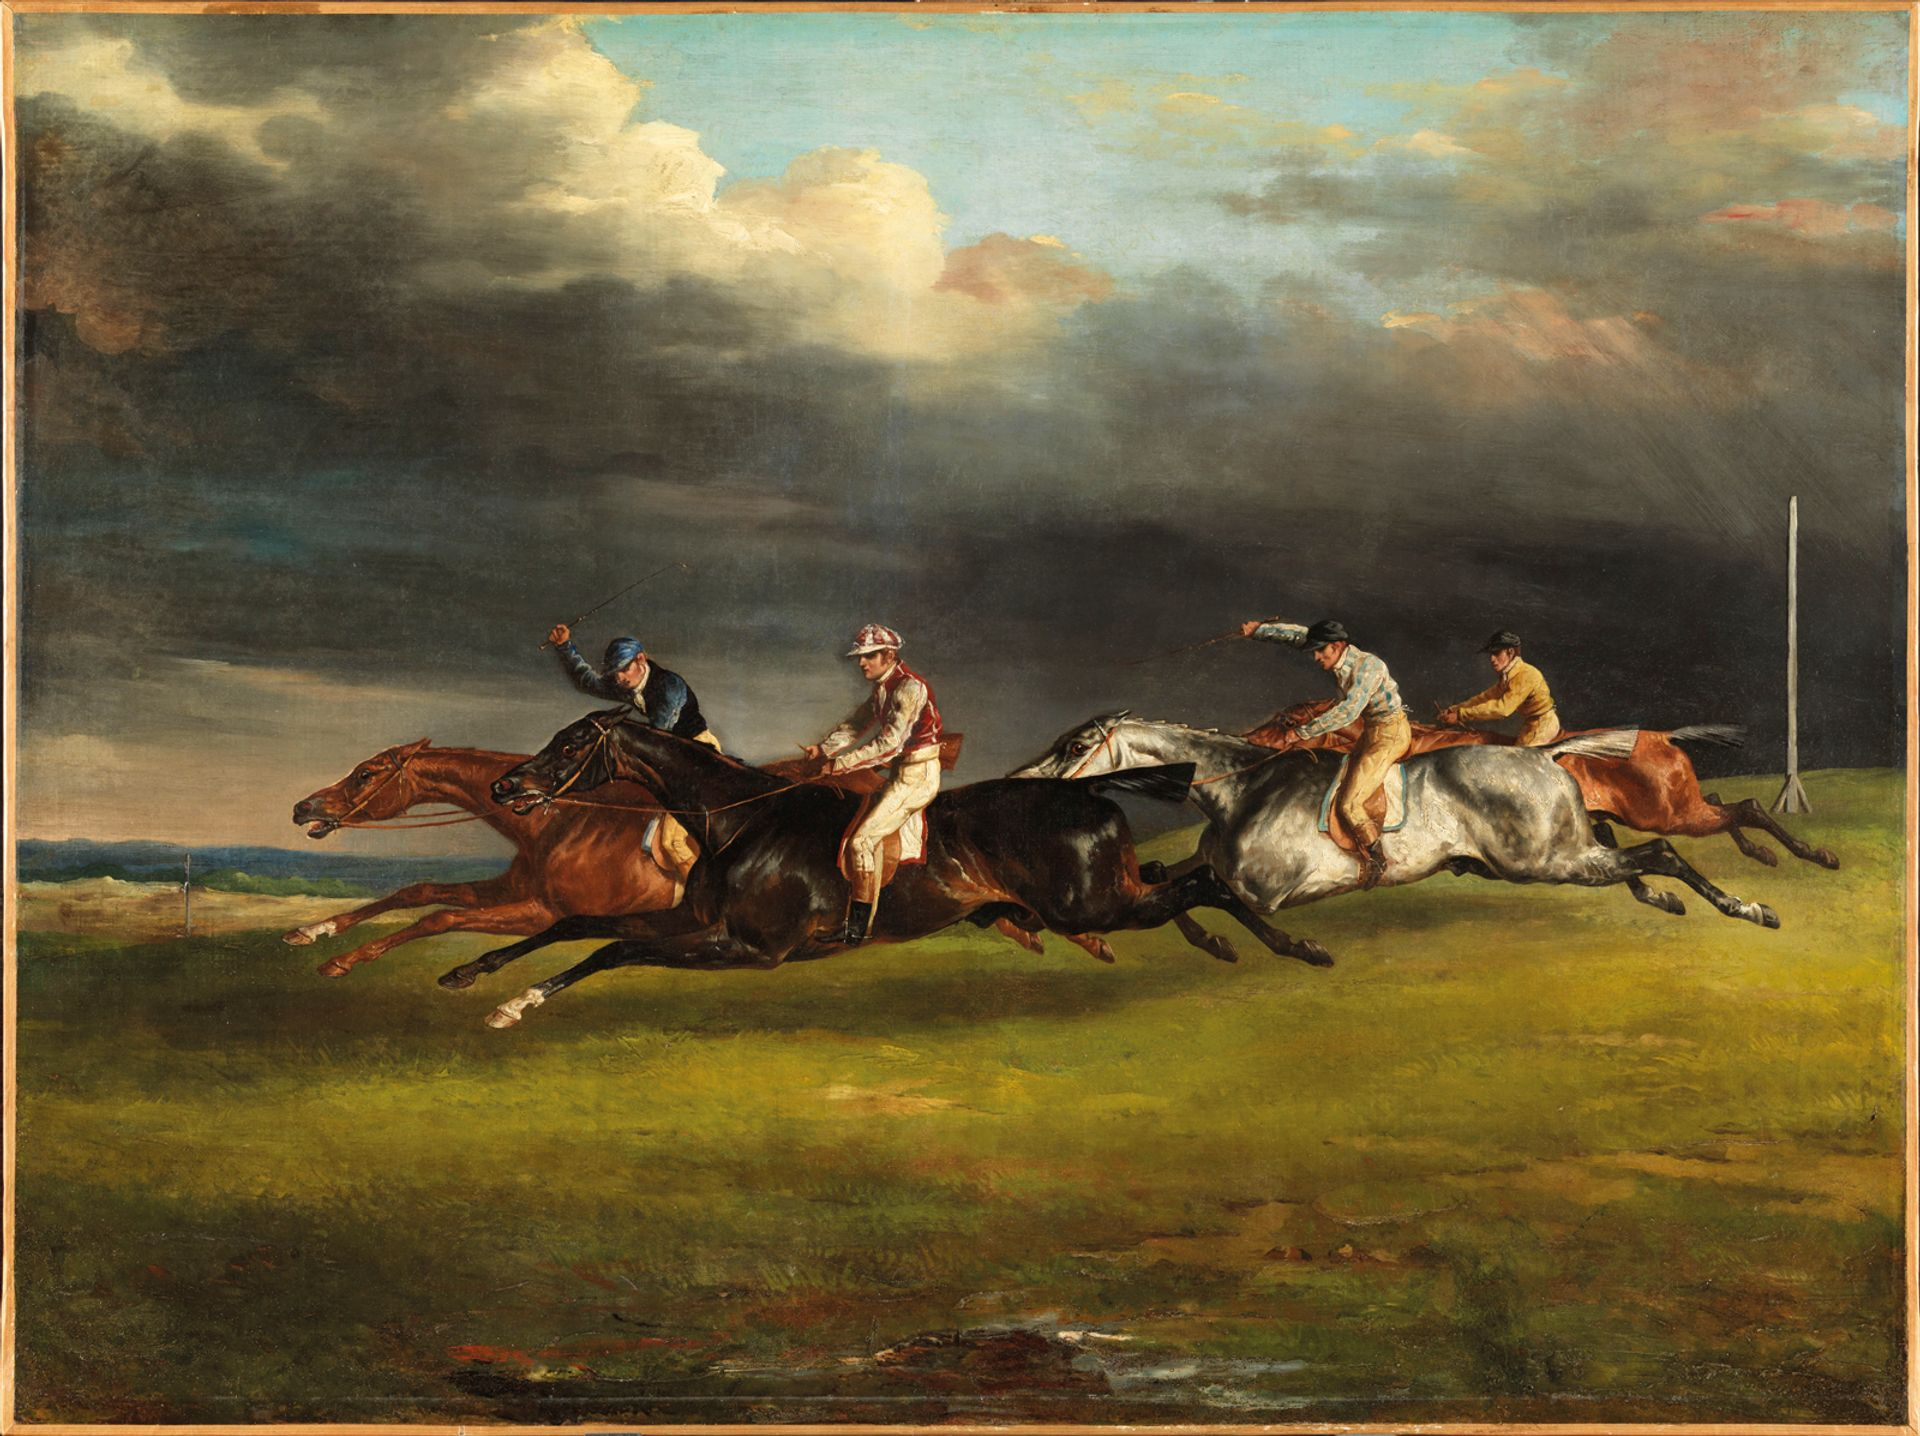 Théodore Géricault's Epsom Derby (1821) painted after the artist trained in London RMN, Grand Palais—Philippe Fuzeau